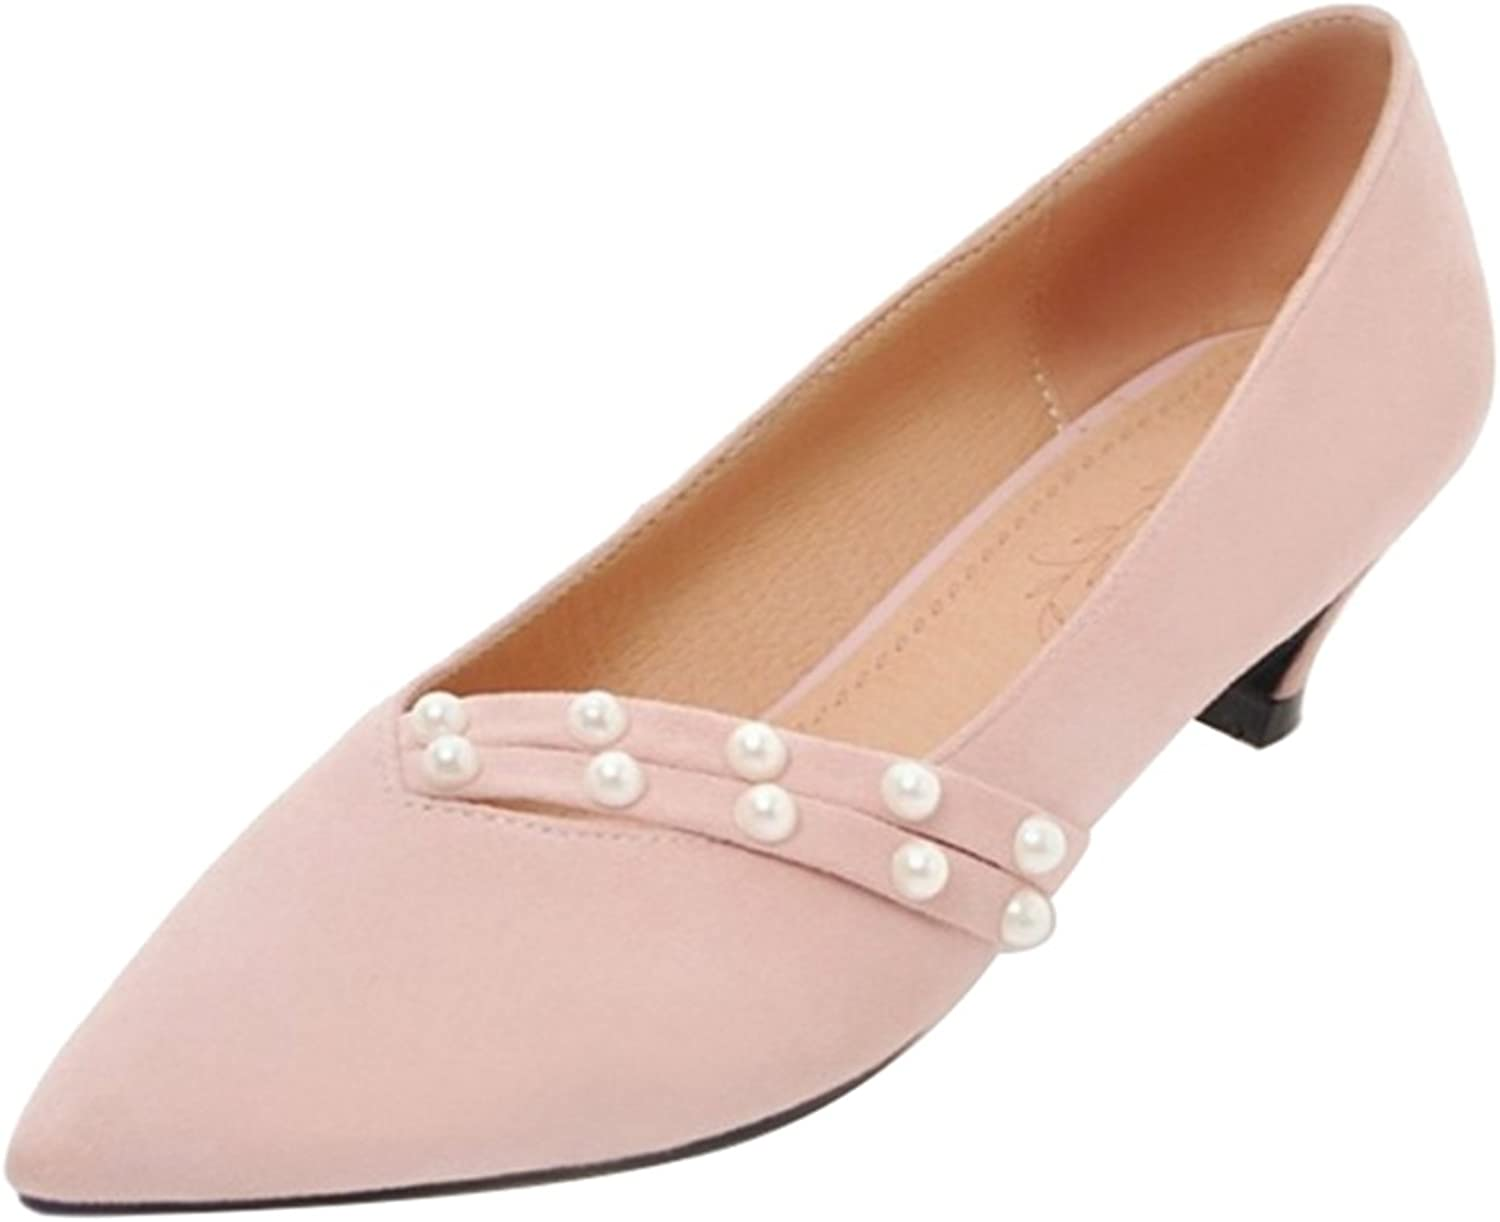 Onewus Pumps with Kitten Heel and Pointed Toe Fashion Nubuck Materail shoes